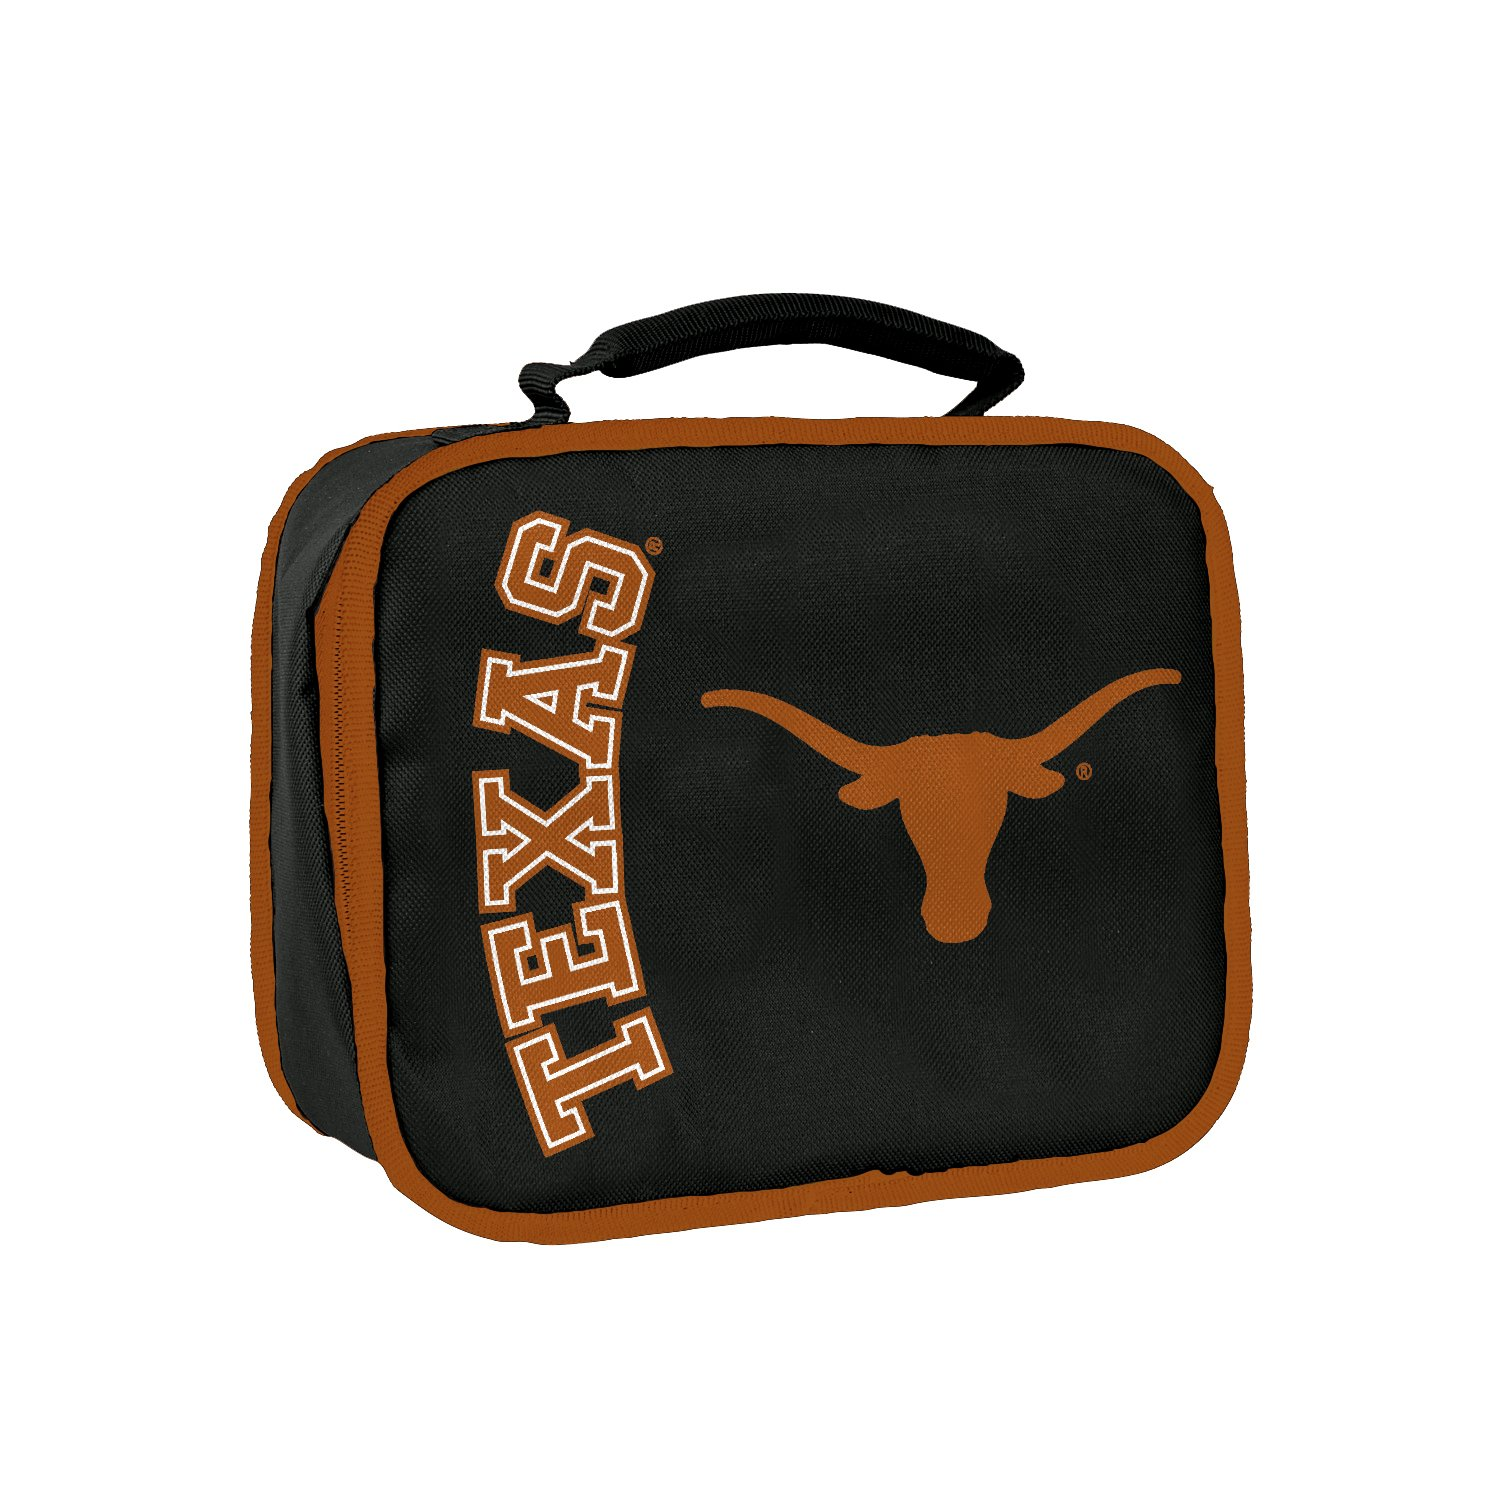 Officially Licensed NCAA Texas Longhorns Sacked Lunch Cooler